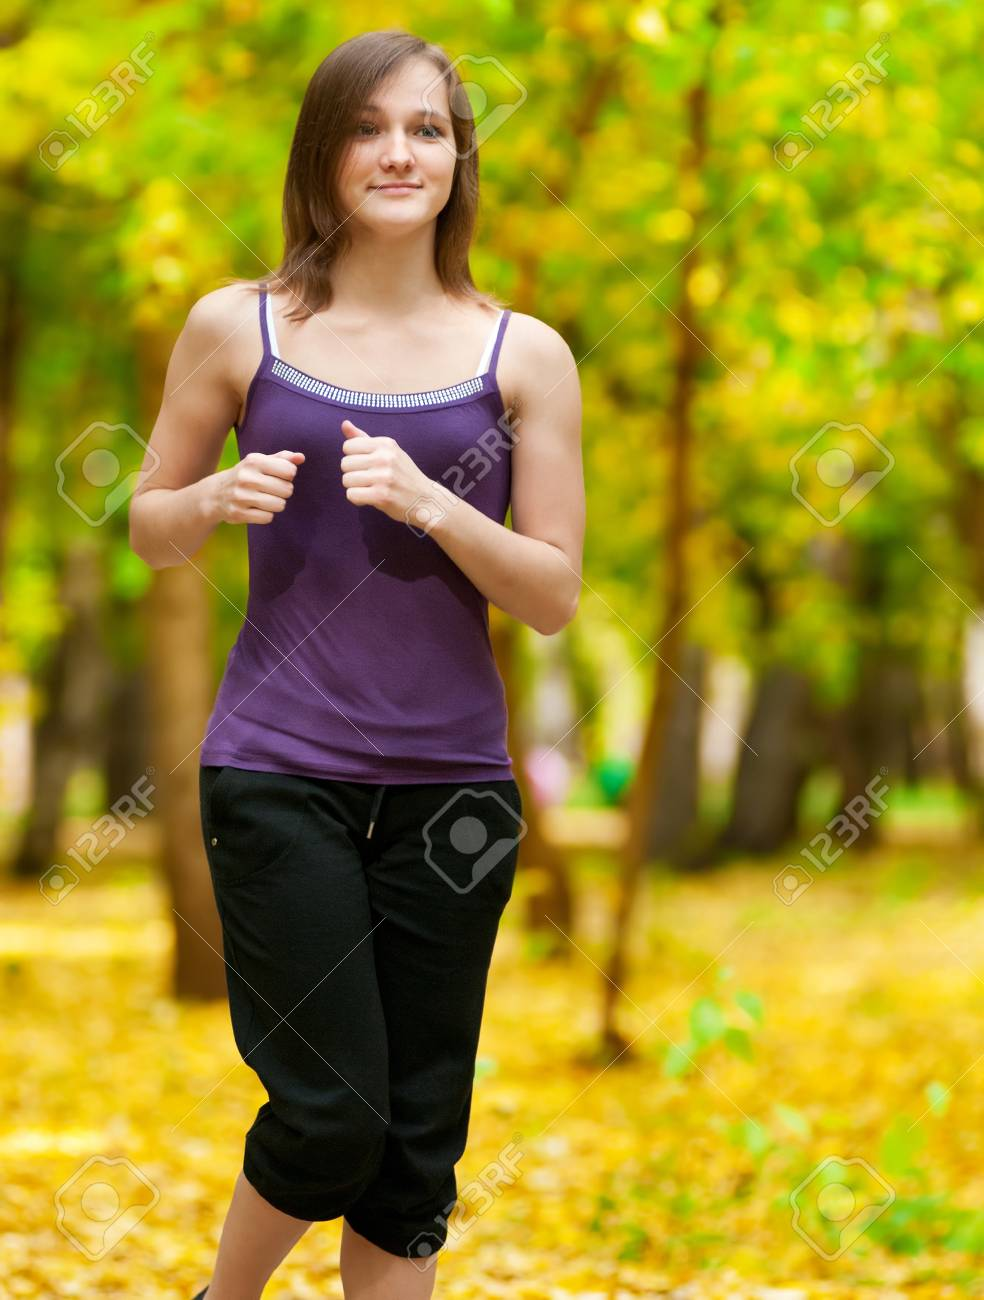 Young woman running outdoors on a lovely sunny winter (fall) day Stock Photo - 12872352